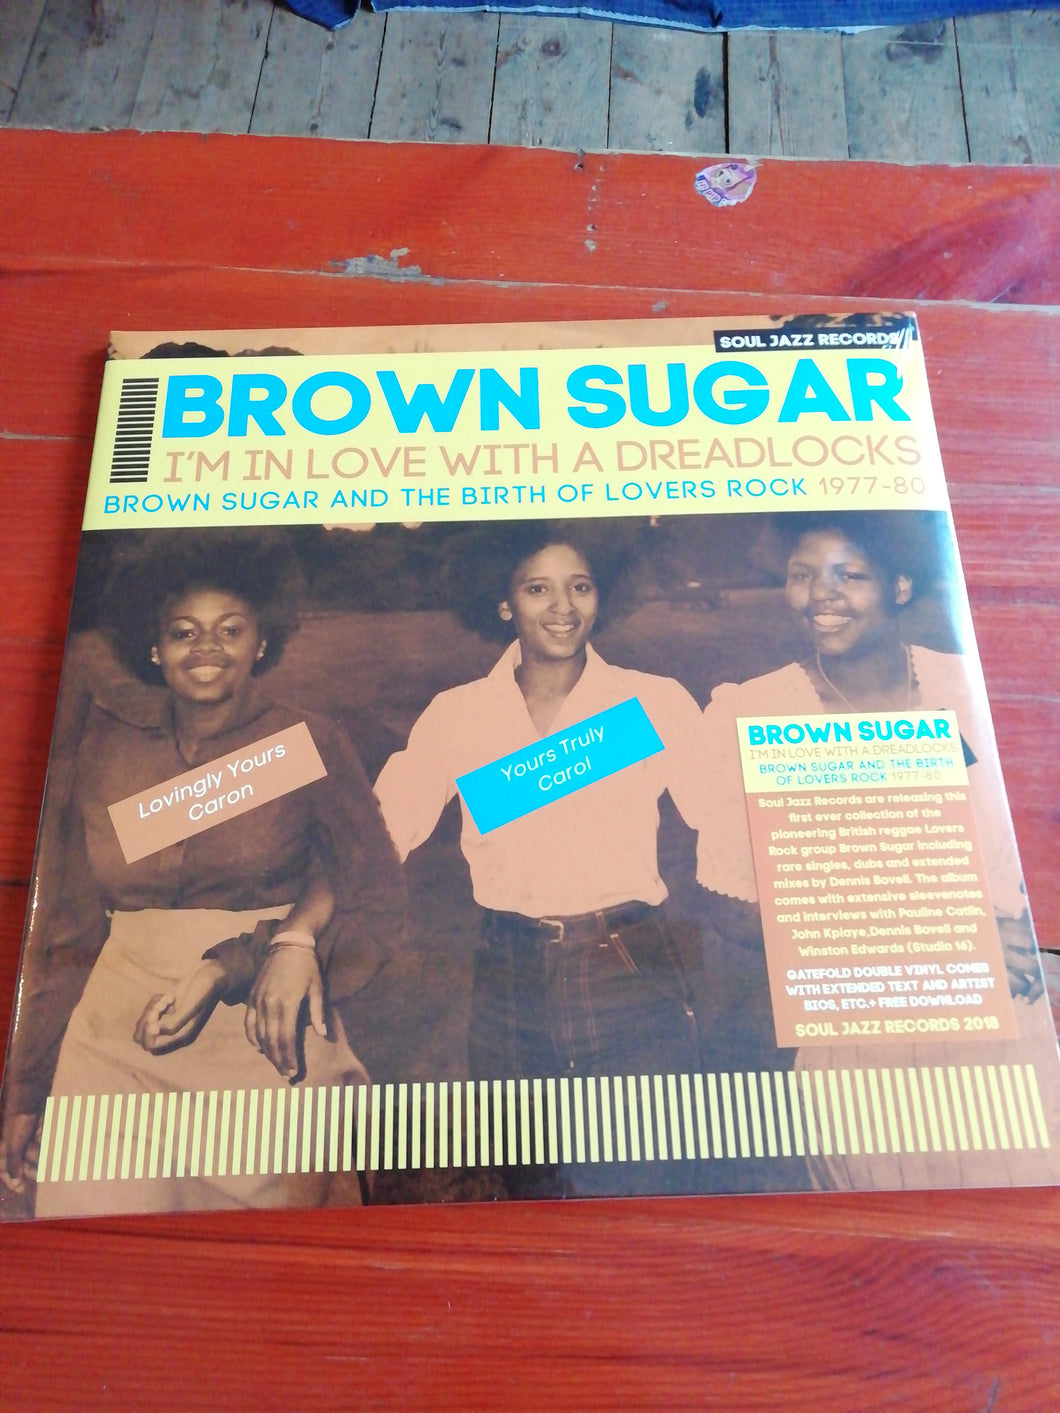 Brown Sugar - 'I'm In Love With A Dreadlocks: Brown Sugar And The Birth Of Lovers Rock 1977-80'